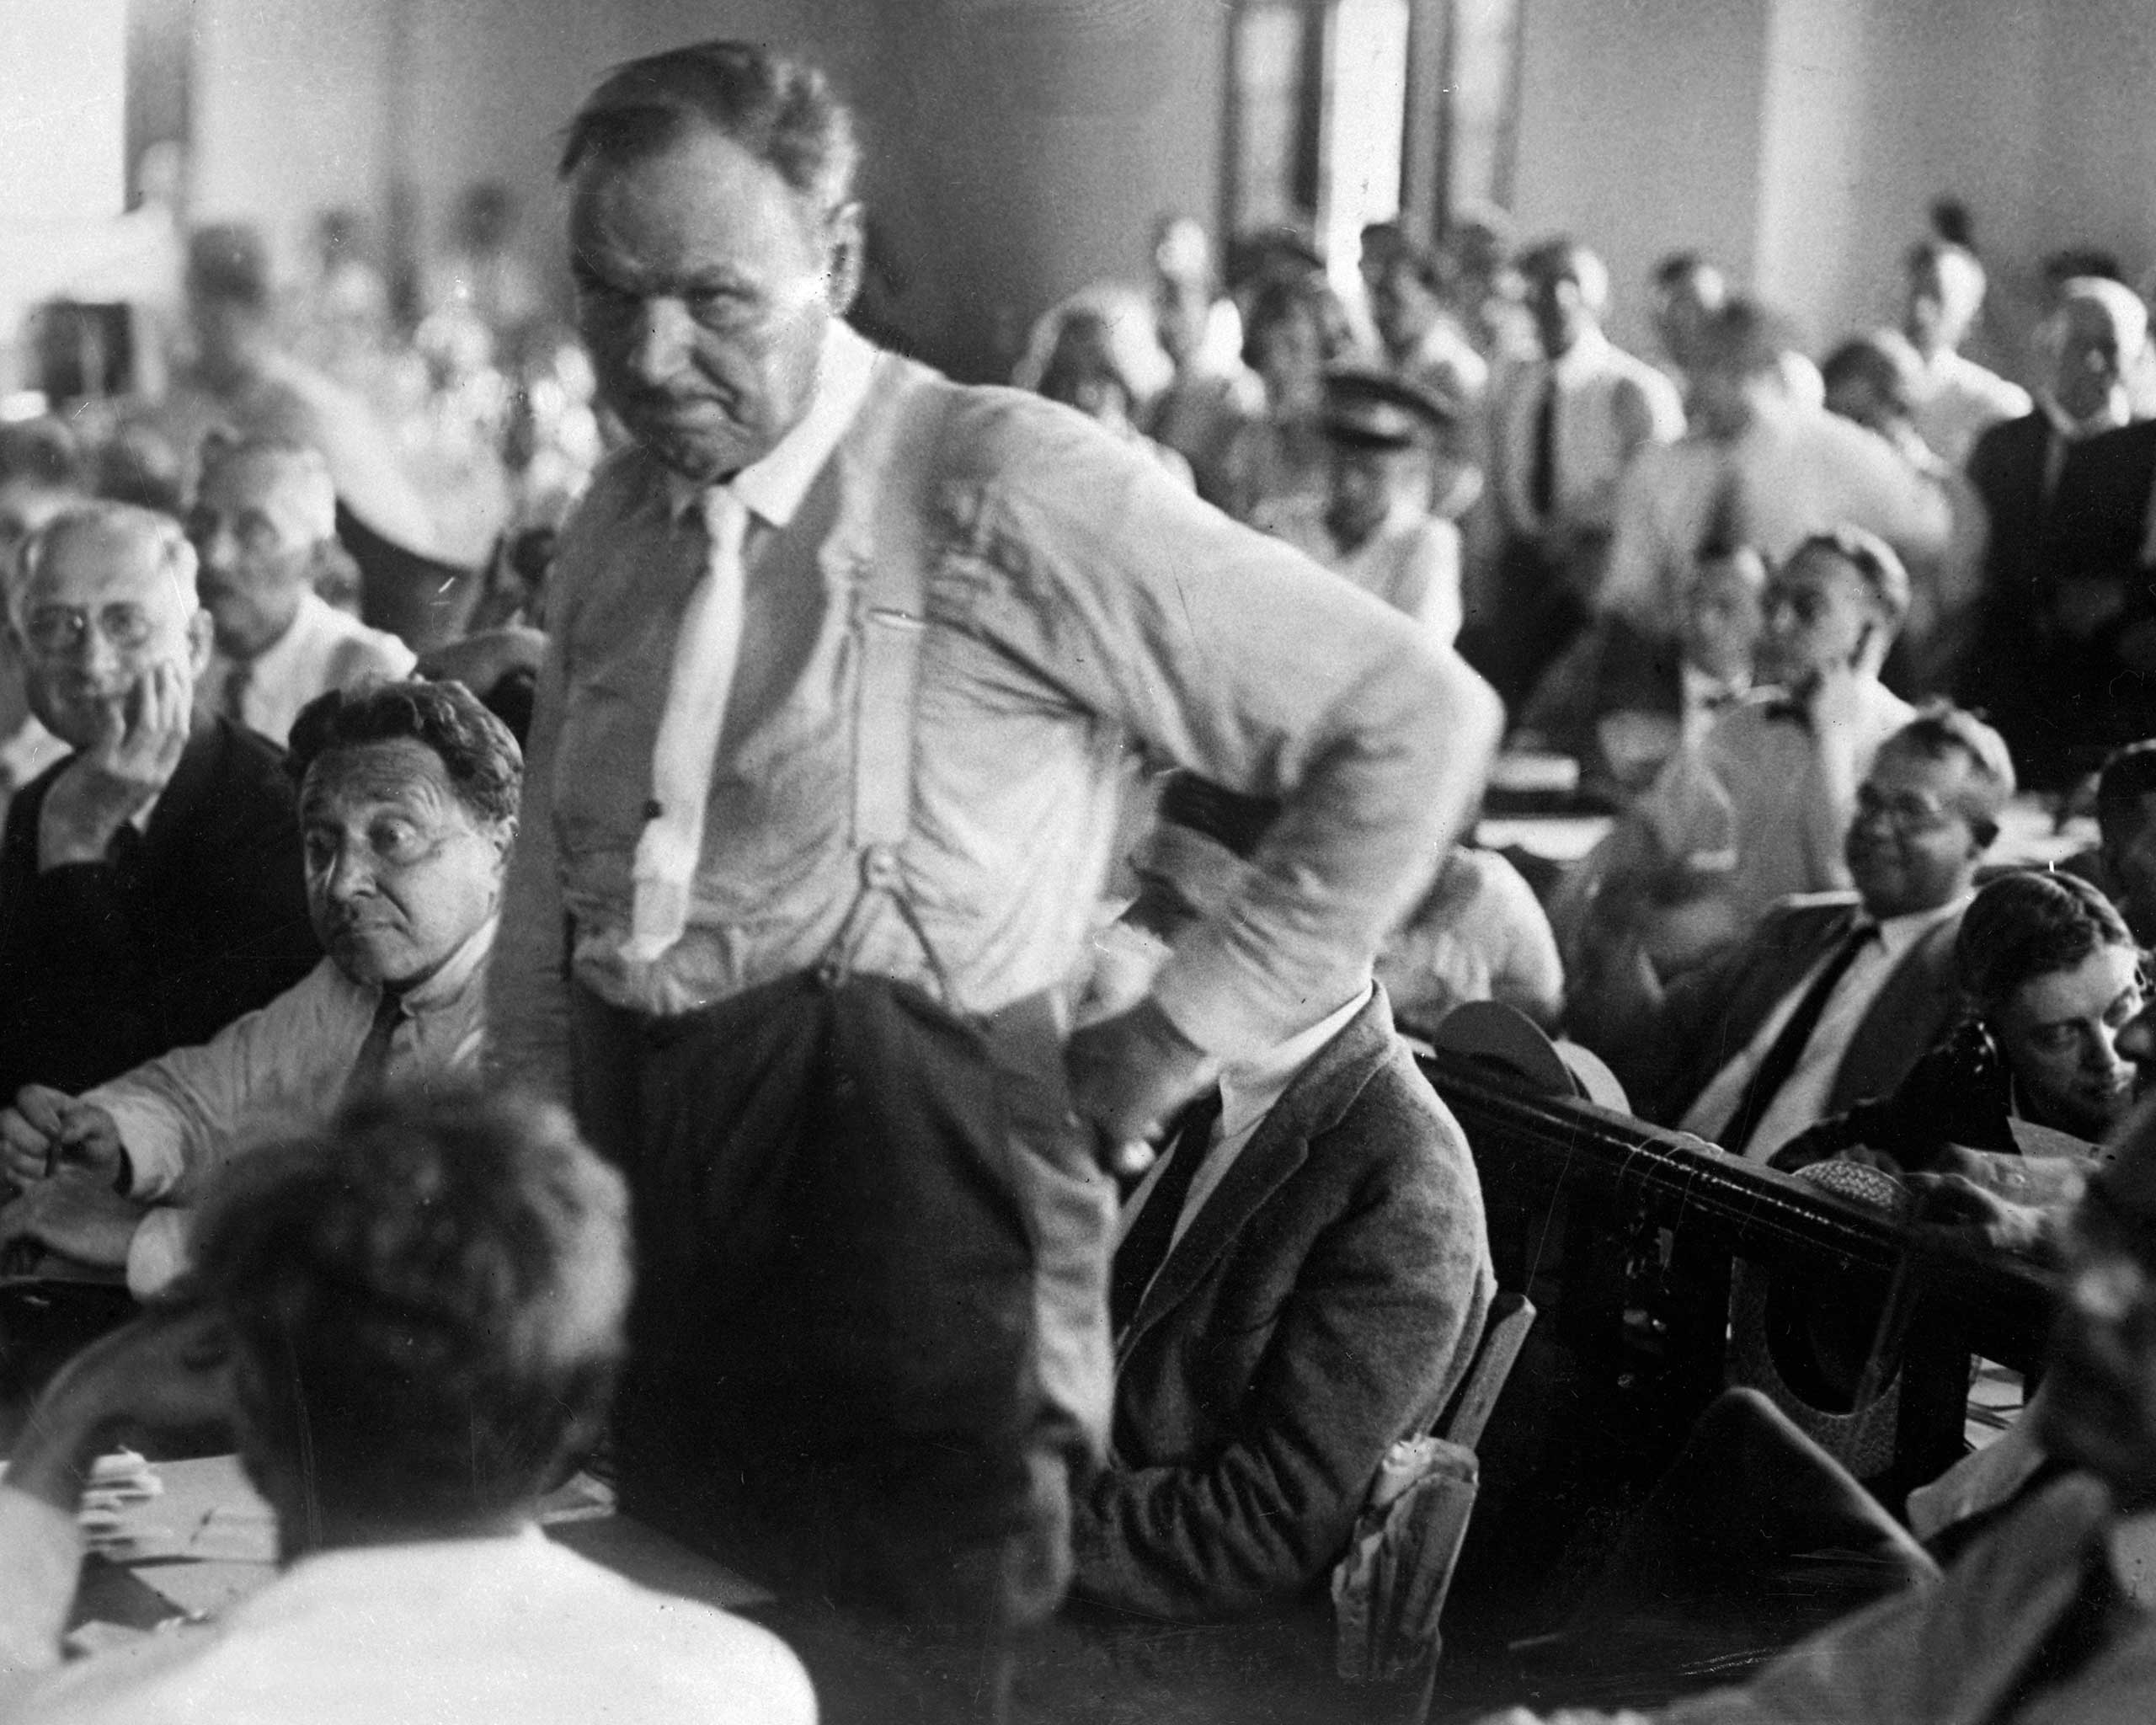 Attorney Clarence Darrow consults with Judge Raulston about procedure in the Tennessee courts during the trial of John T. Scopes.